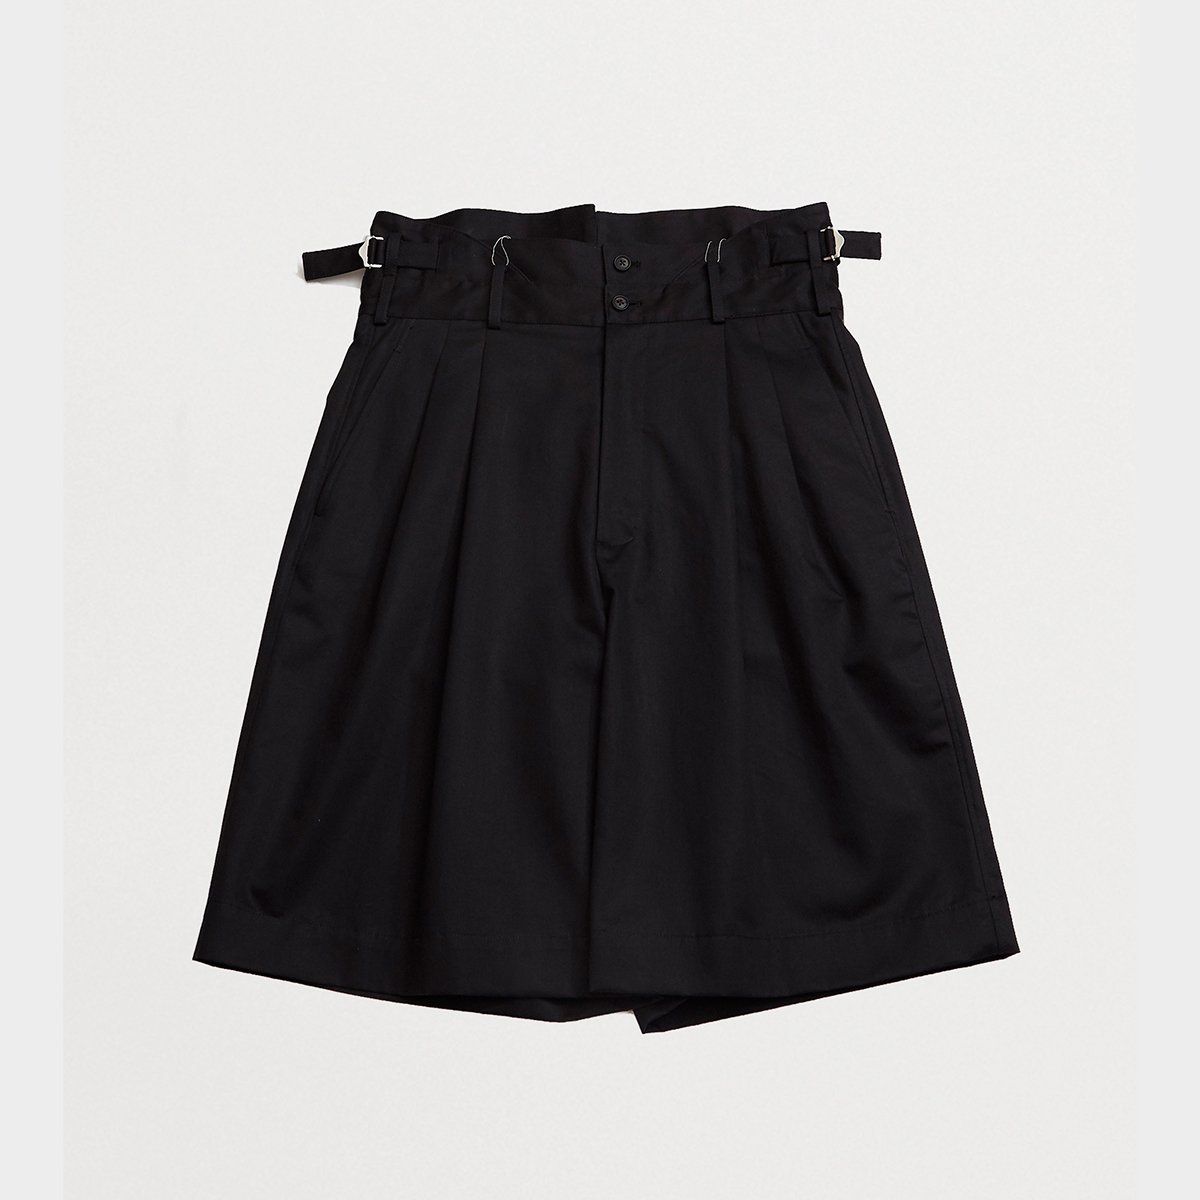 <img class='new_mark_img1' src='https://img.shop-pro.jp/img/new/icons47.gif' style='border:none;display:inline;margin:0px;padding:0px;width:auto;' />HIGH WAIST SHORTS / BLACK